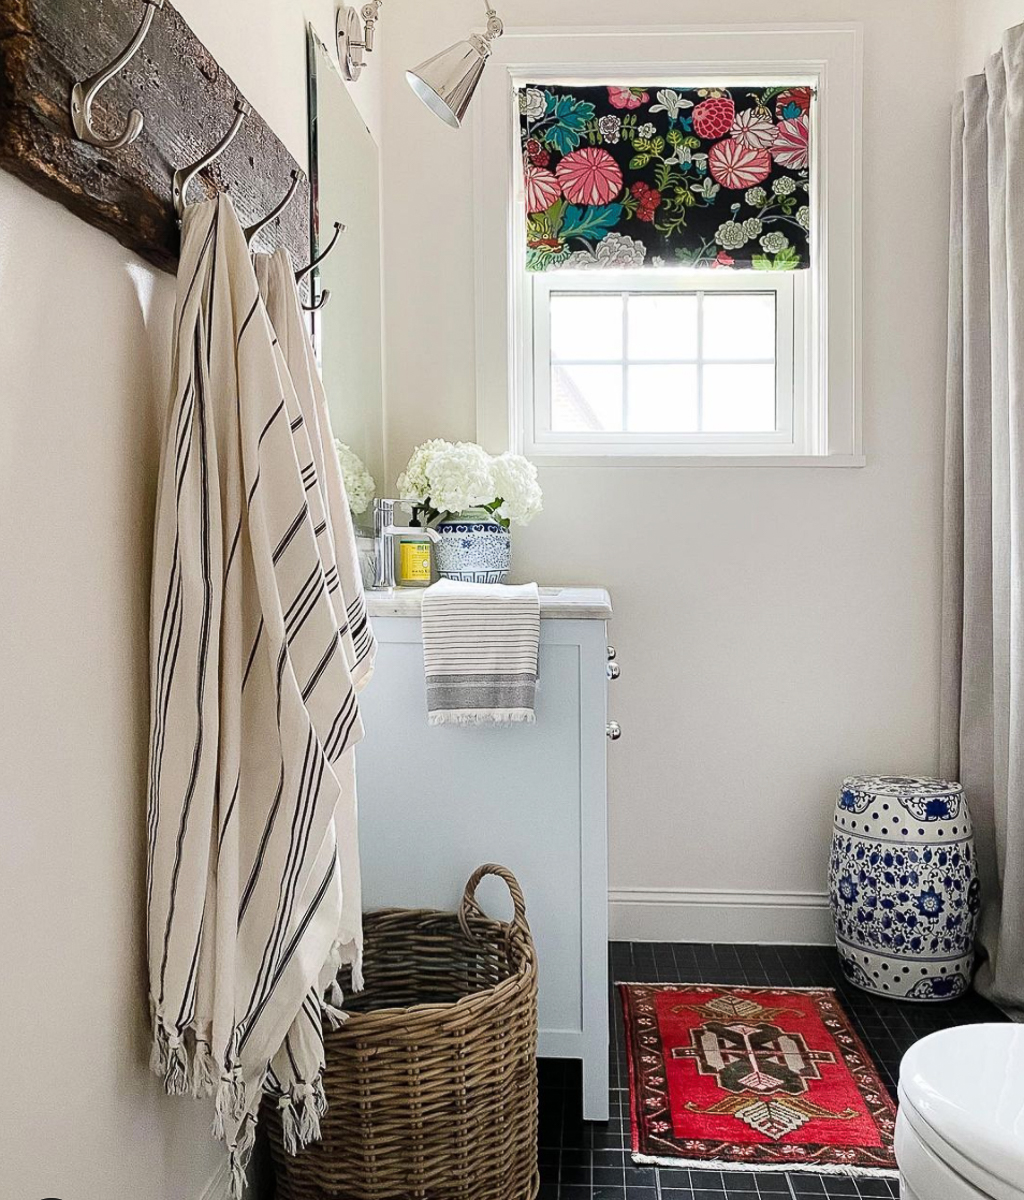 Small bathroom with white walls and black tile floor kellyelko.com